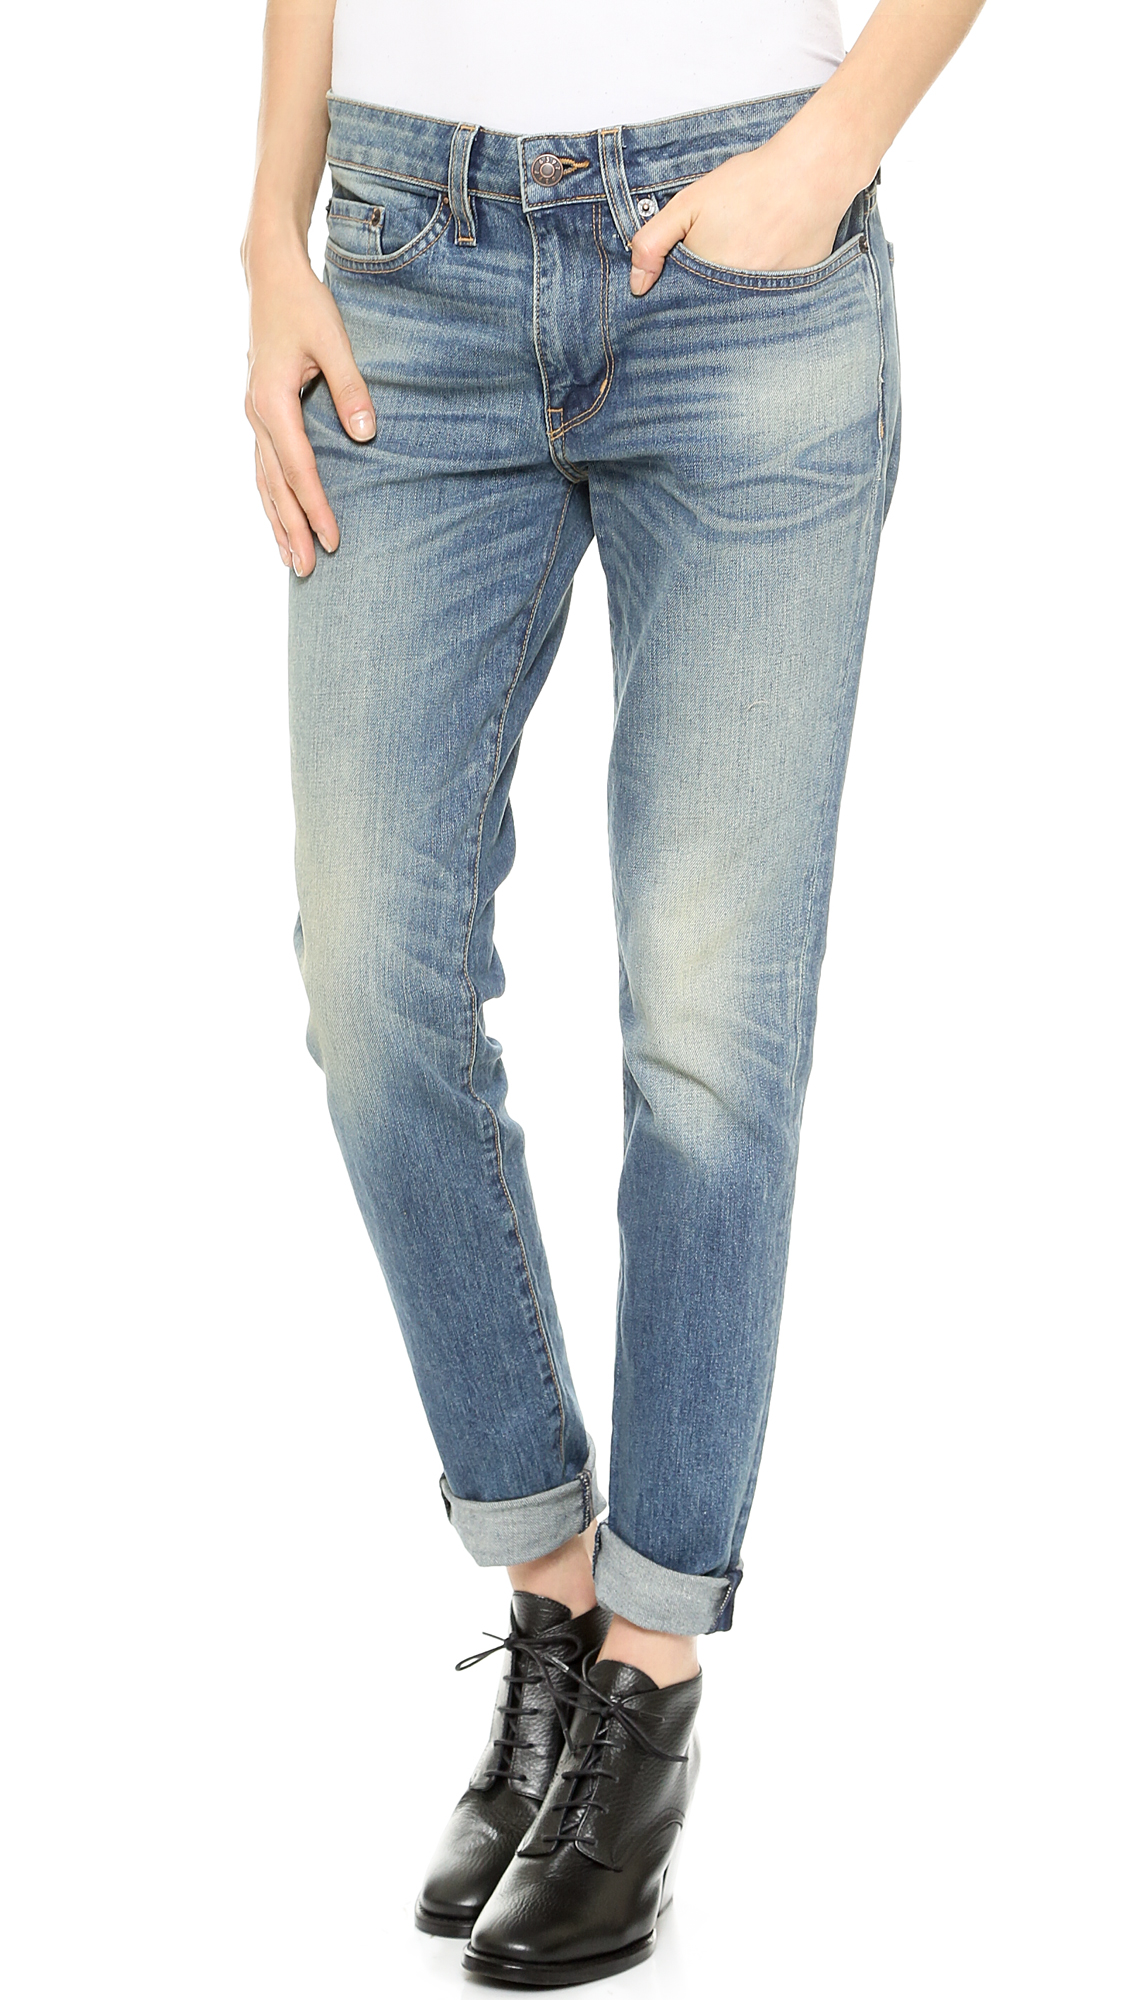 Find great deals on Mens Loose Jeans at Kohl's today! Sponsored Links Outside companies pay to advertise via these links when specific phrases and words are searched.